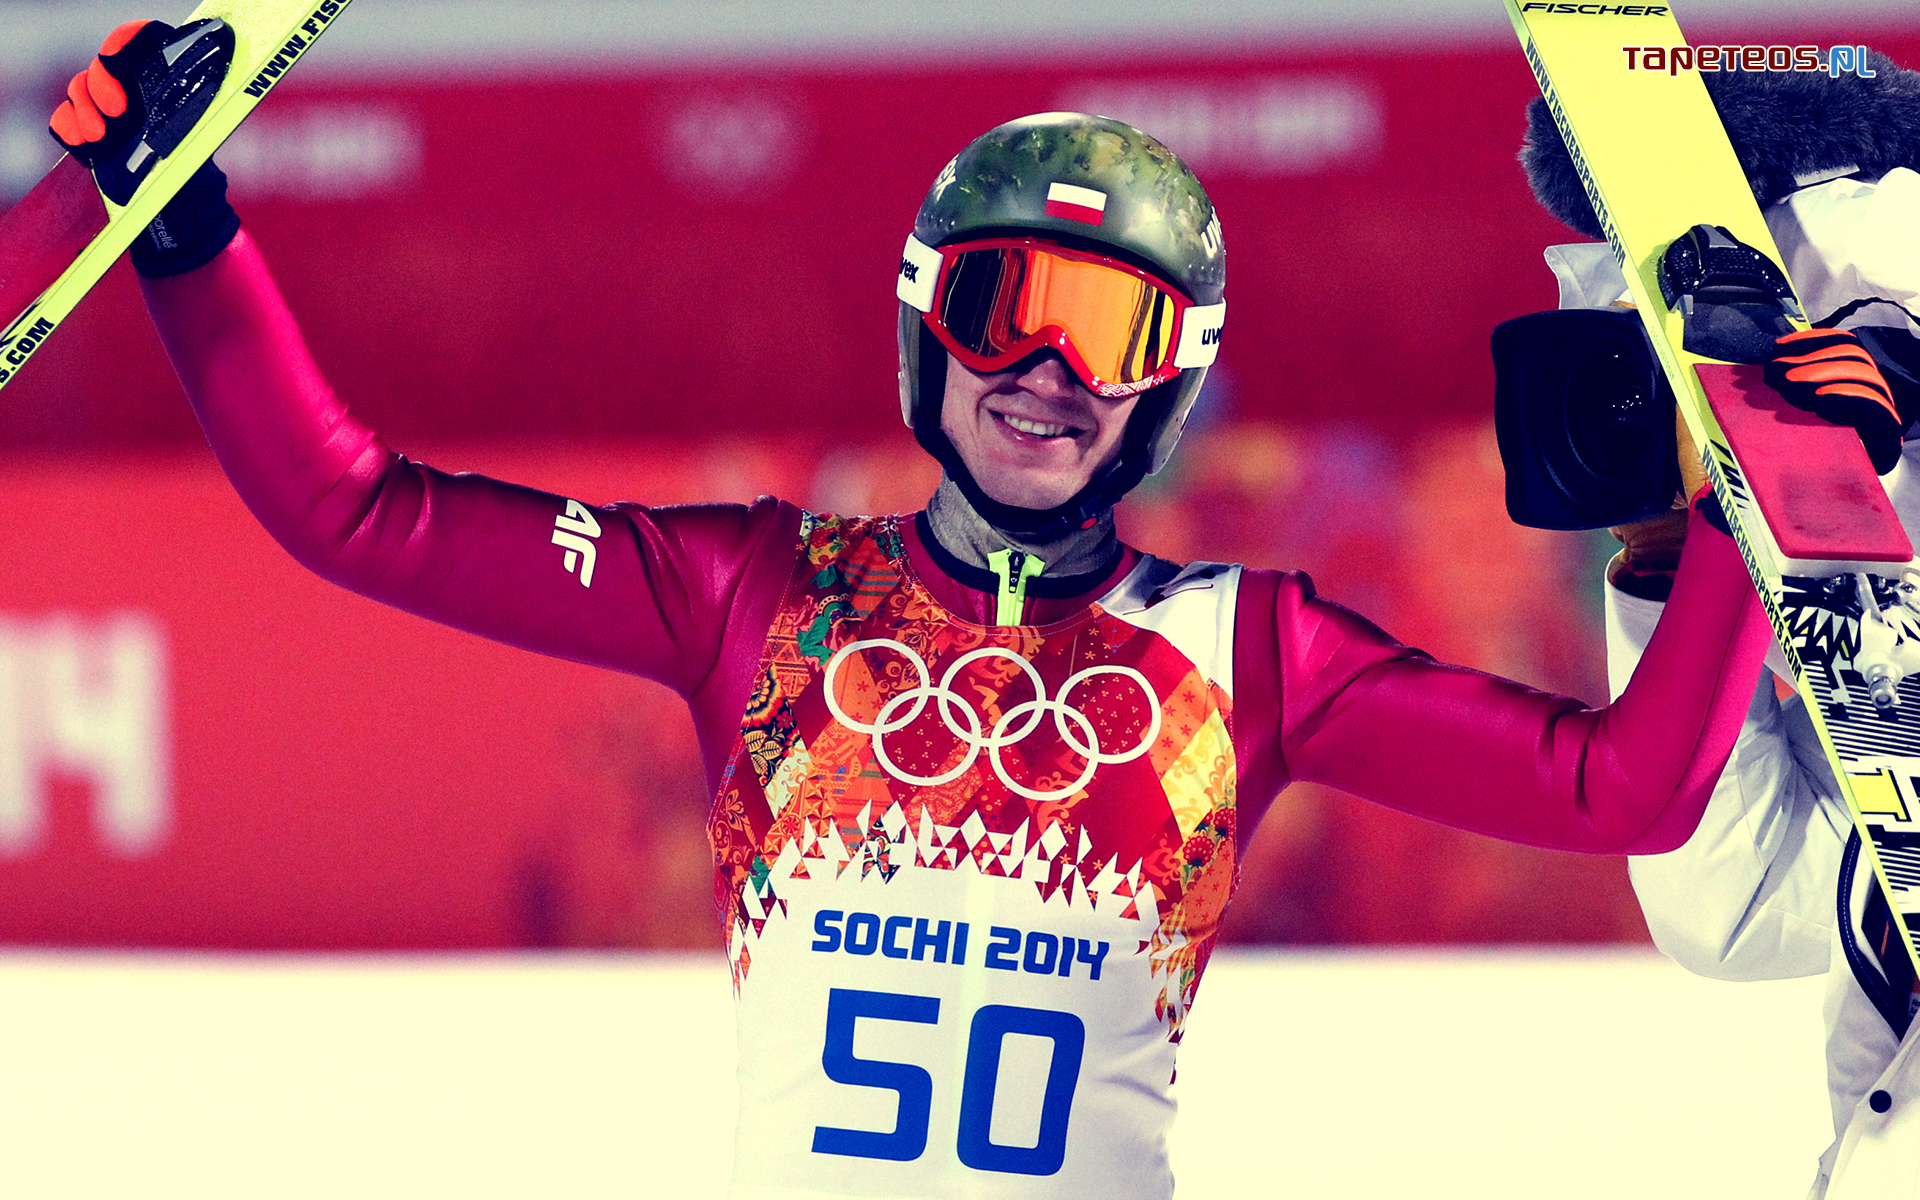 1920x1200 - Kamil Stoch Wallpapers 7